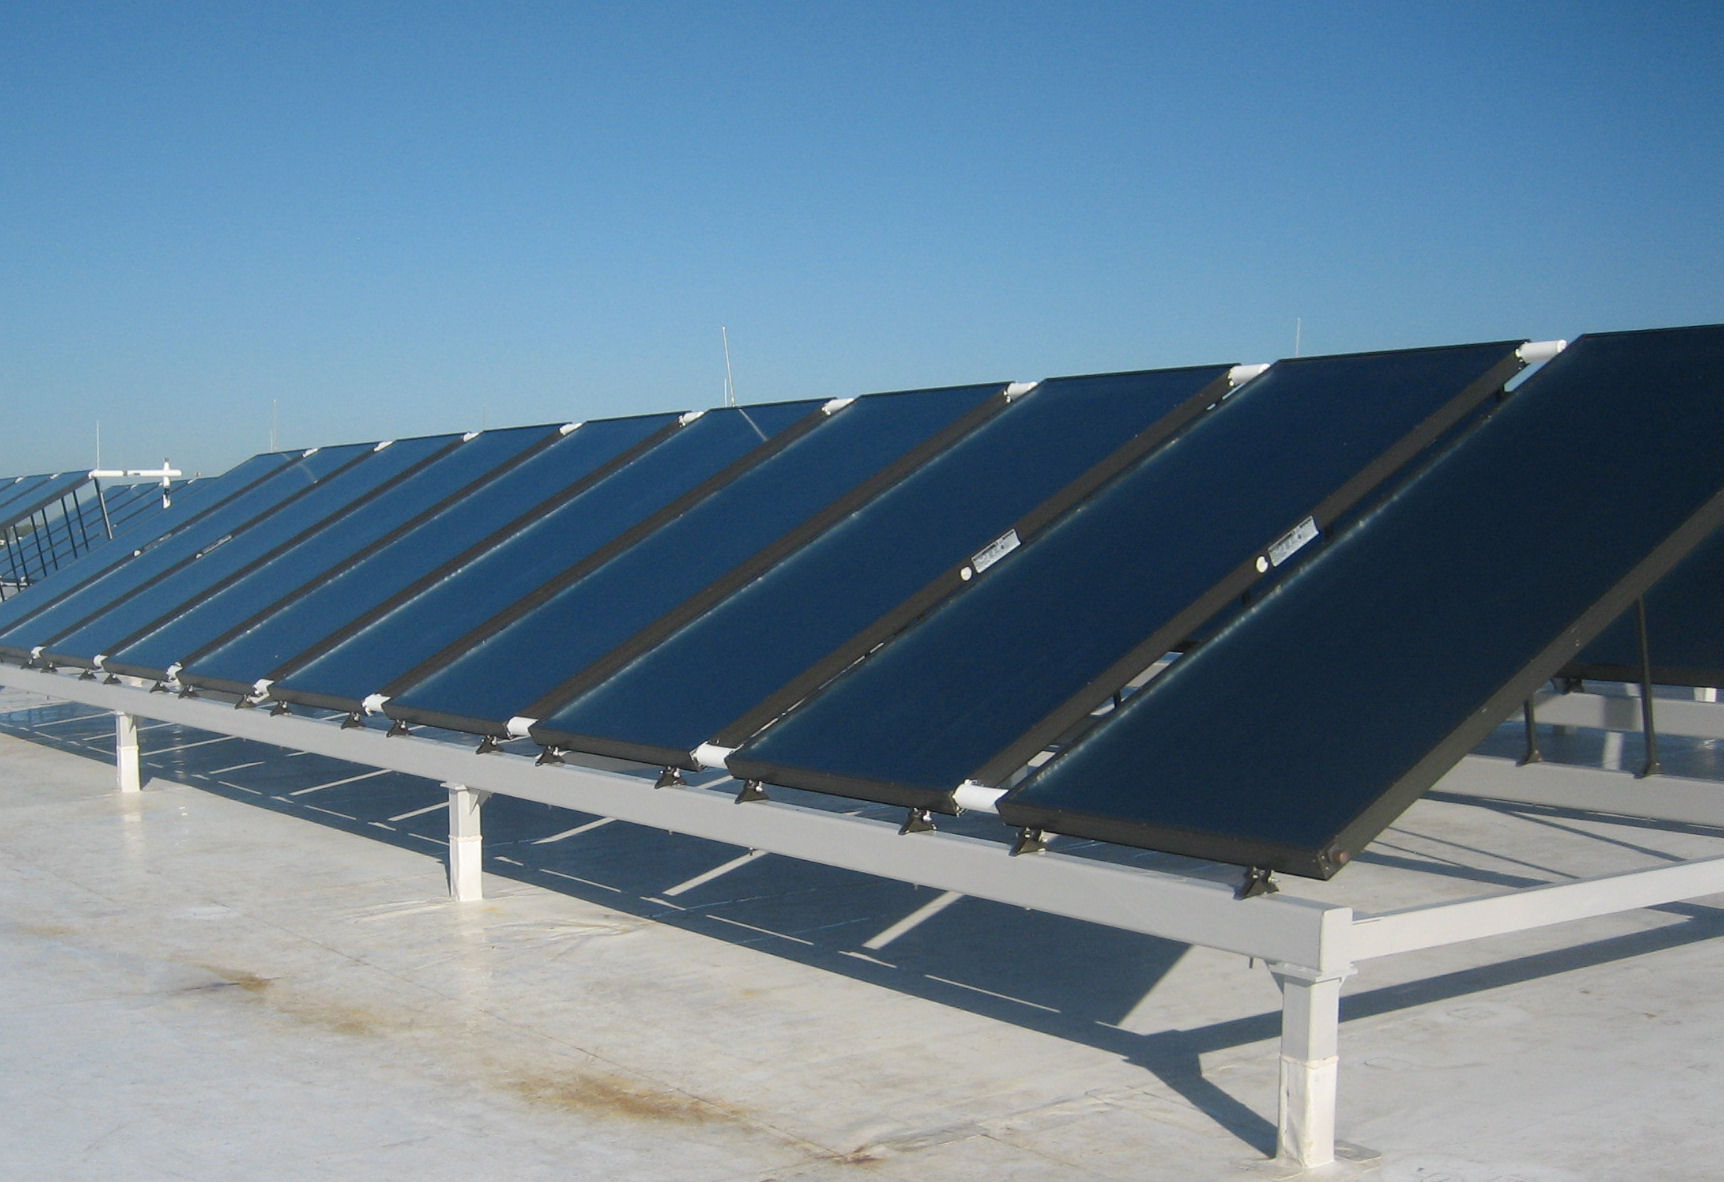 Bank of Solar Thermal Collectors